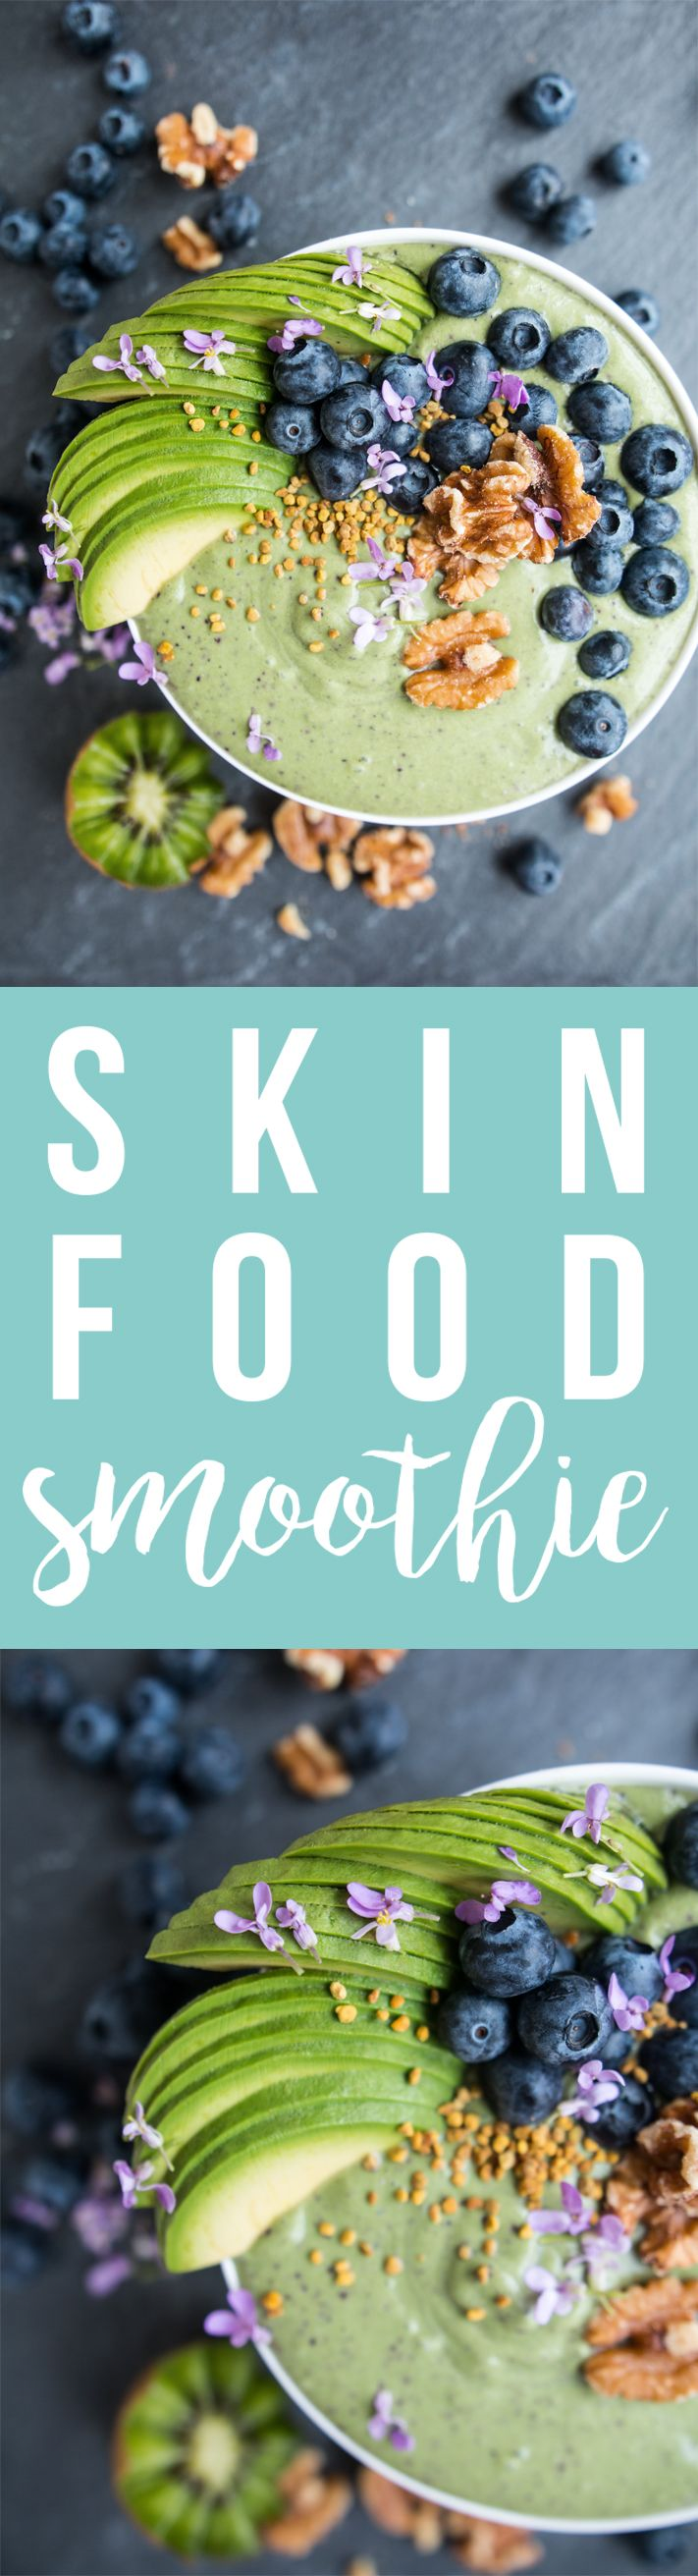 Skin Food Smoothie blends spinach, walnuts, blueberries and kiwi for a skin-supporting powerhouse of a snack or breakfast! Fresh Planet Flavor